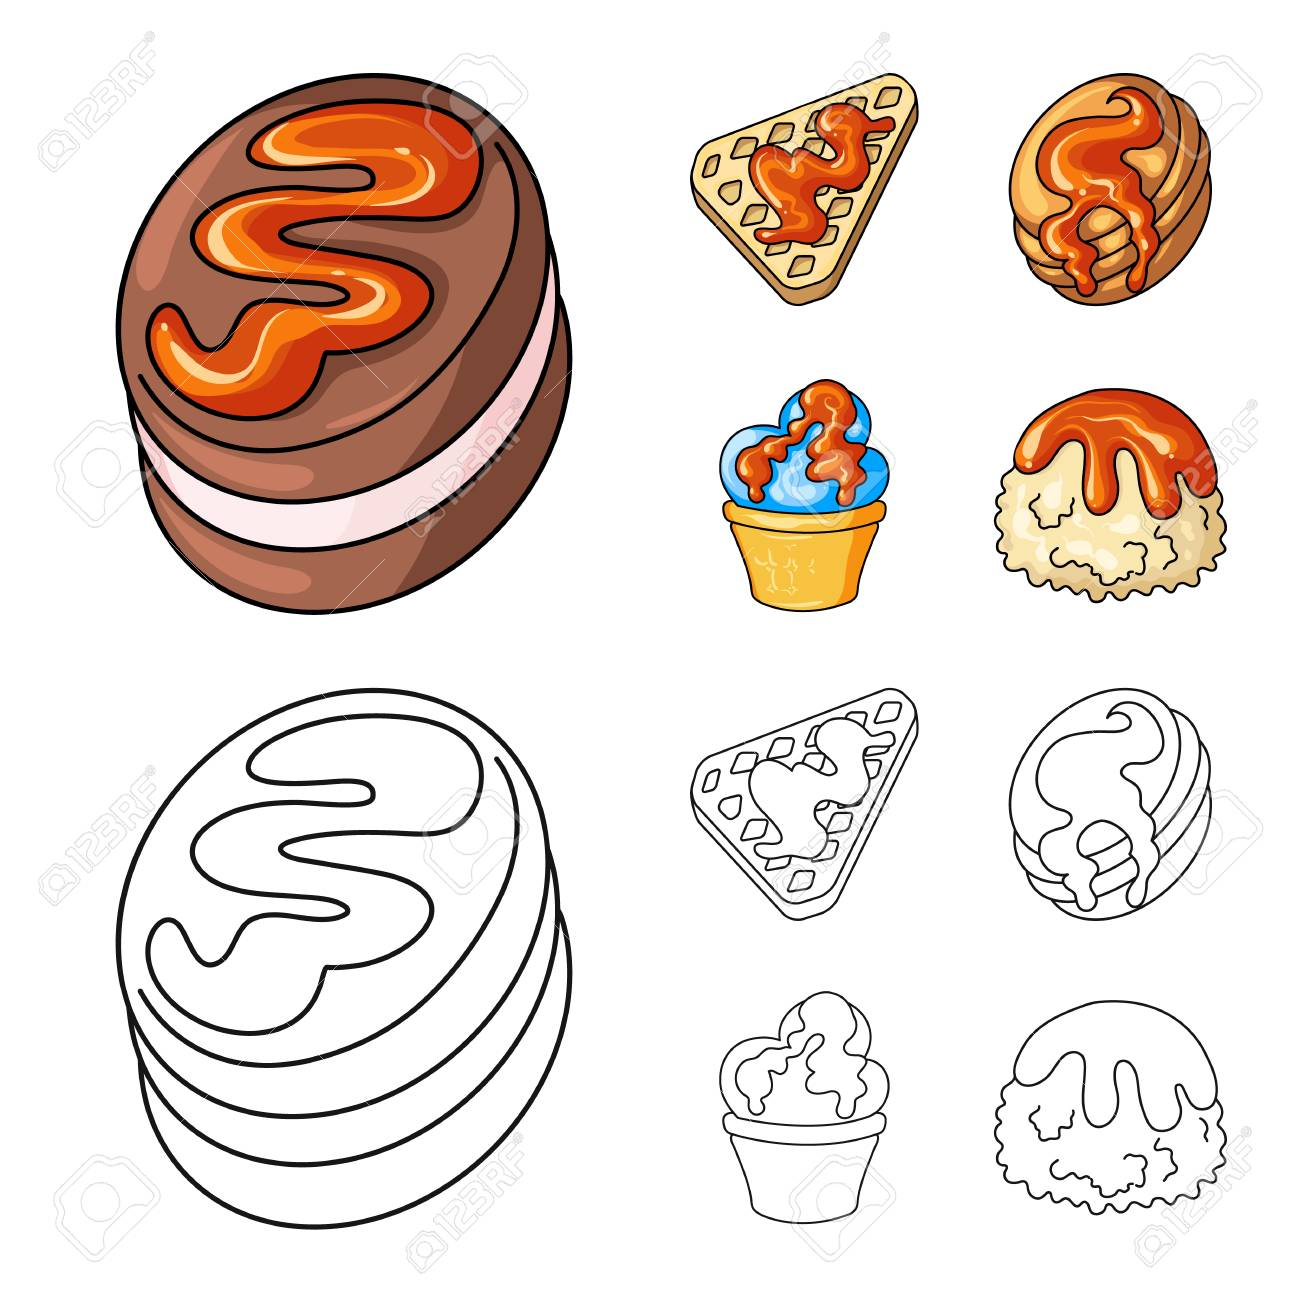 Isolated object of confectionery and culinary icon. Collection of confectionery and product stock symbol for web. - 124838522